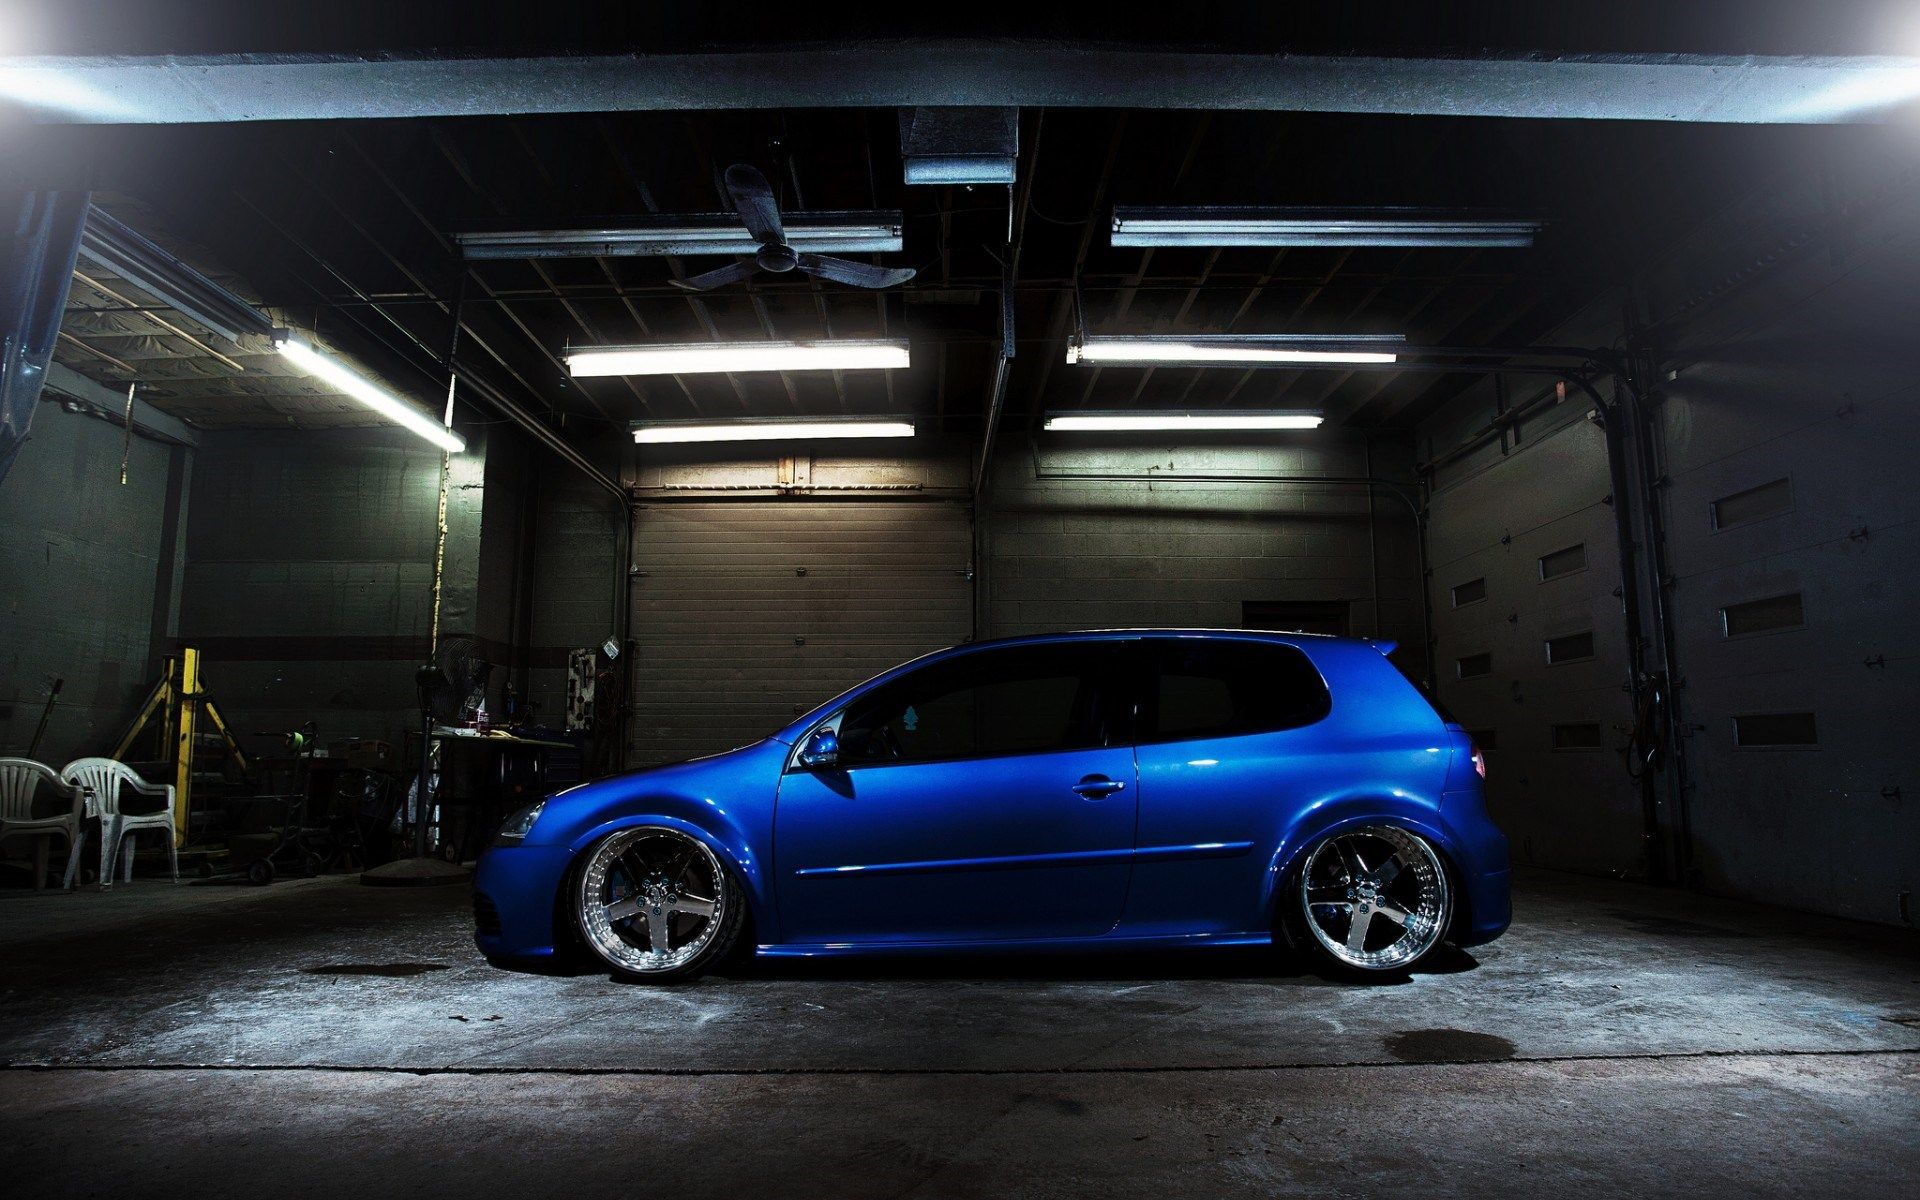 Volkswagen Golf GTI Garage Low Light Neons HD Wallpaper